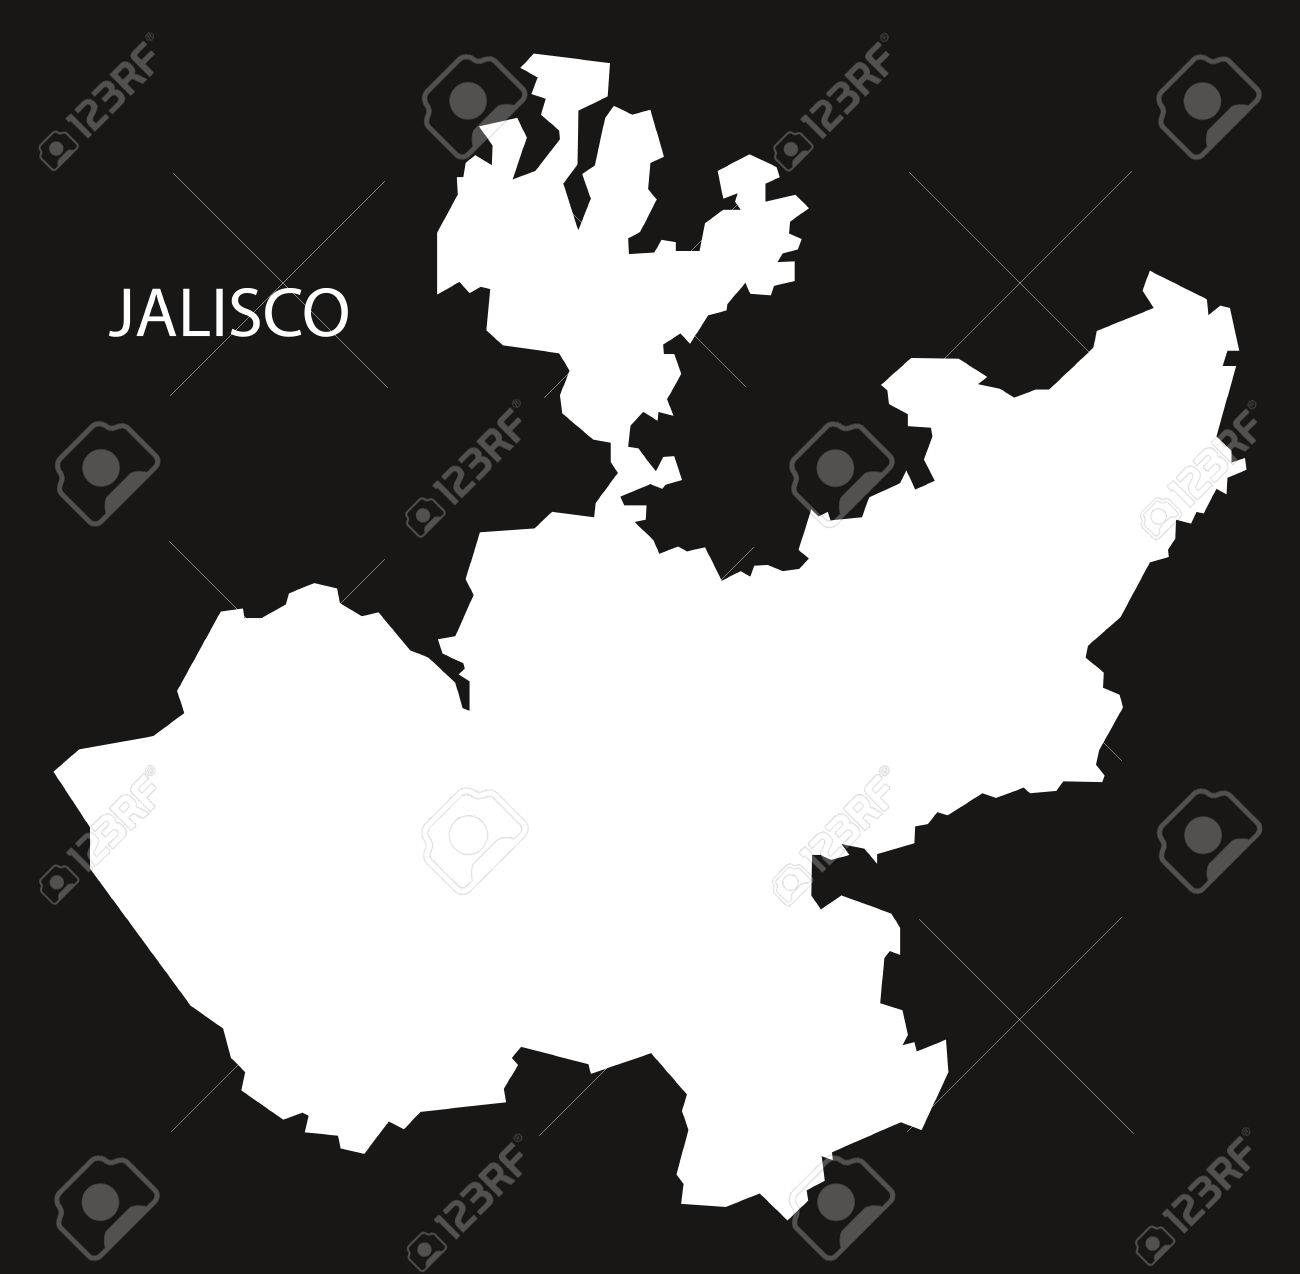 Jalisco Mexico Map Black Inverted Silhouette Royalty Free Cliparts on